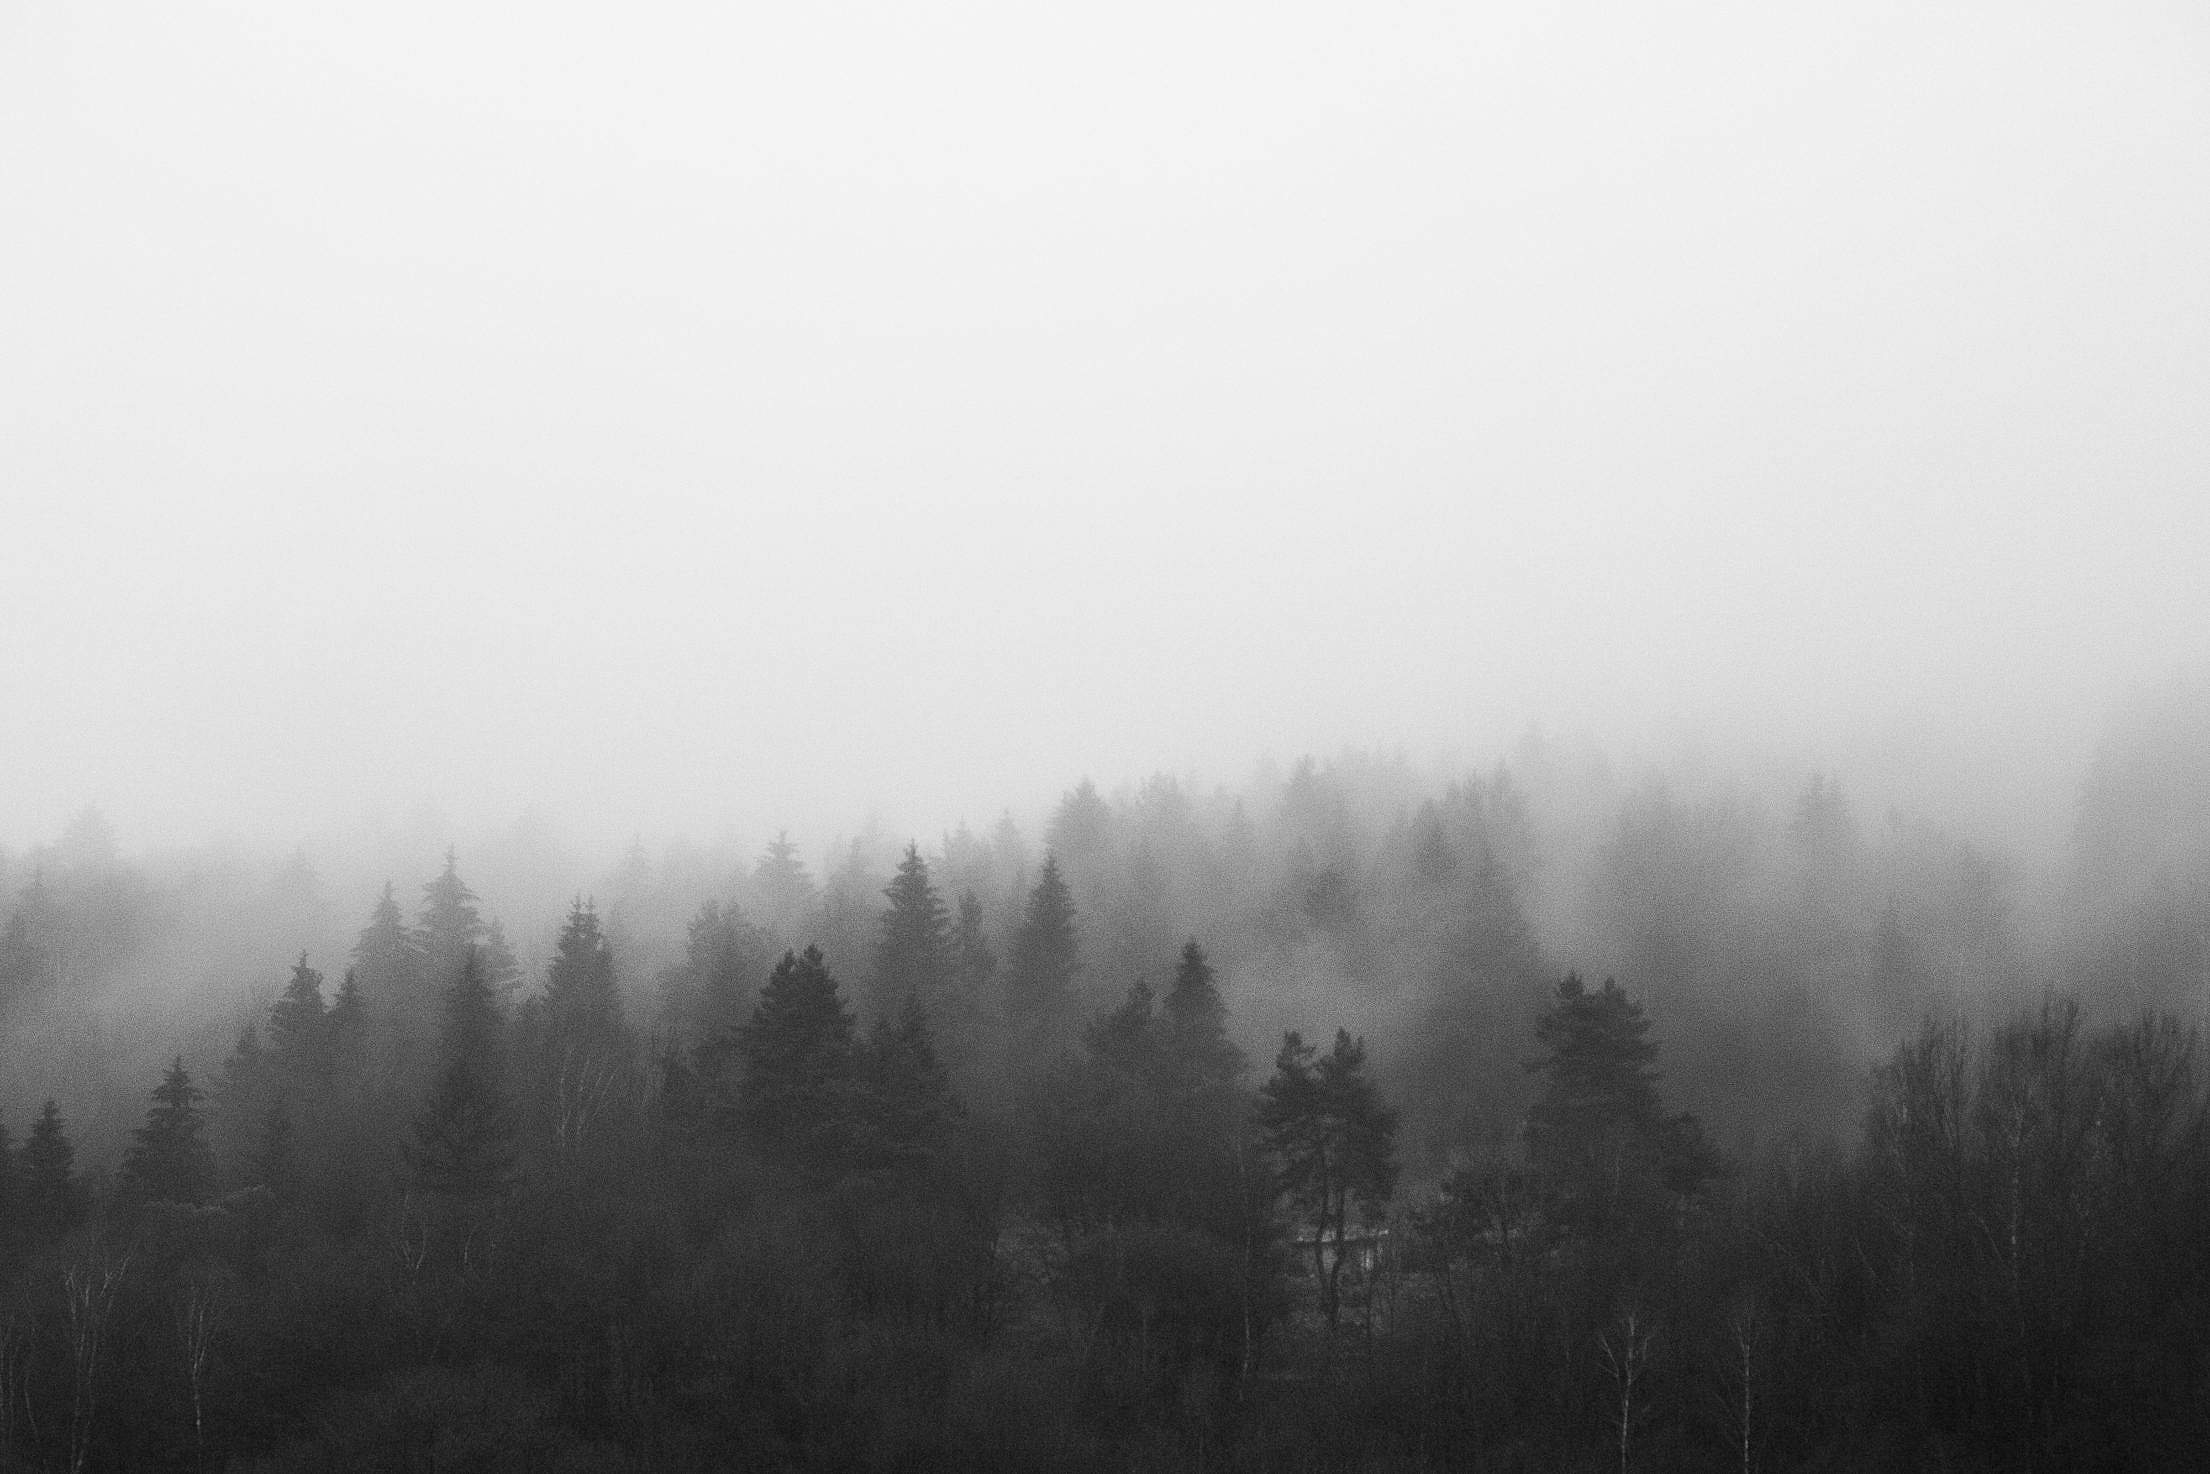 Black and White Morning Foggy Forest Free Stock Photo